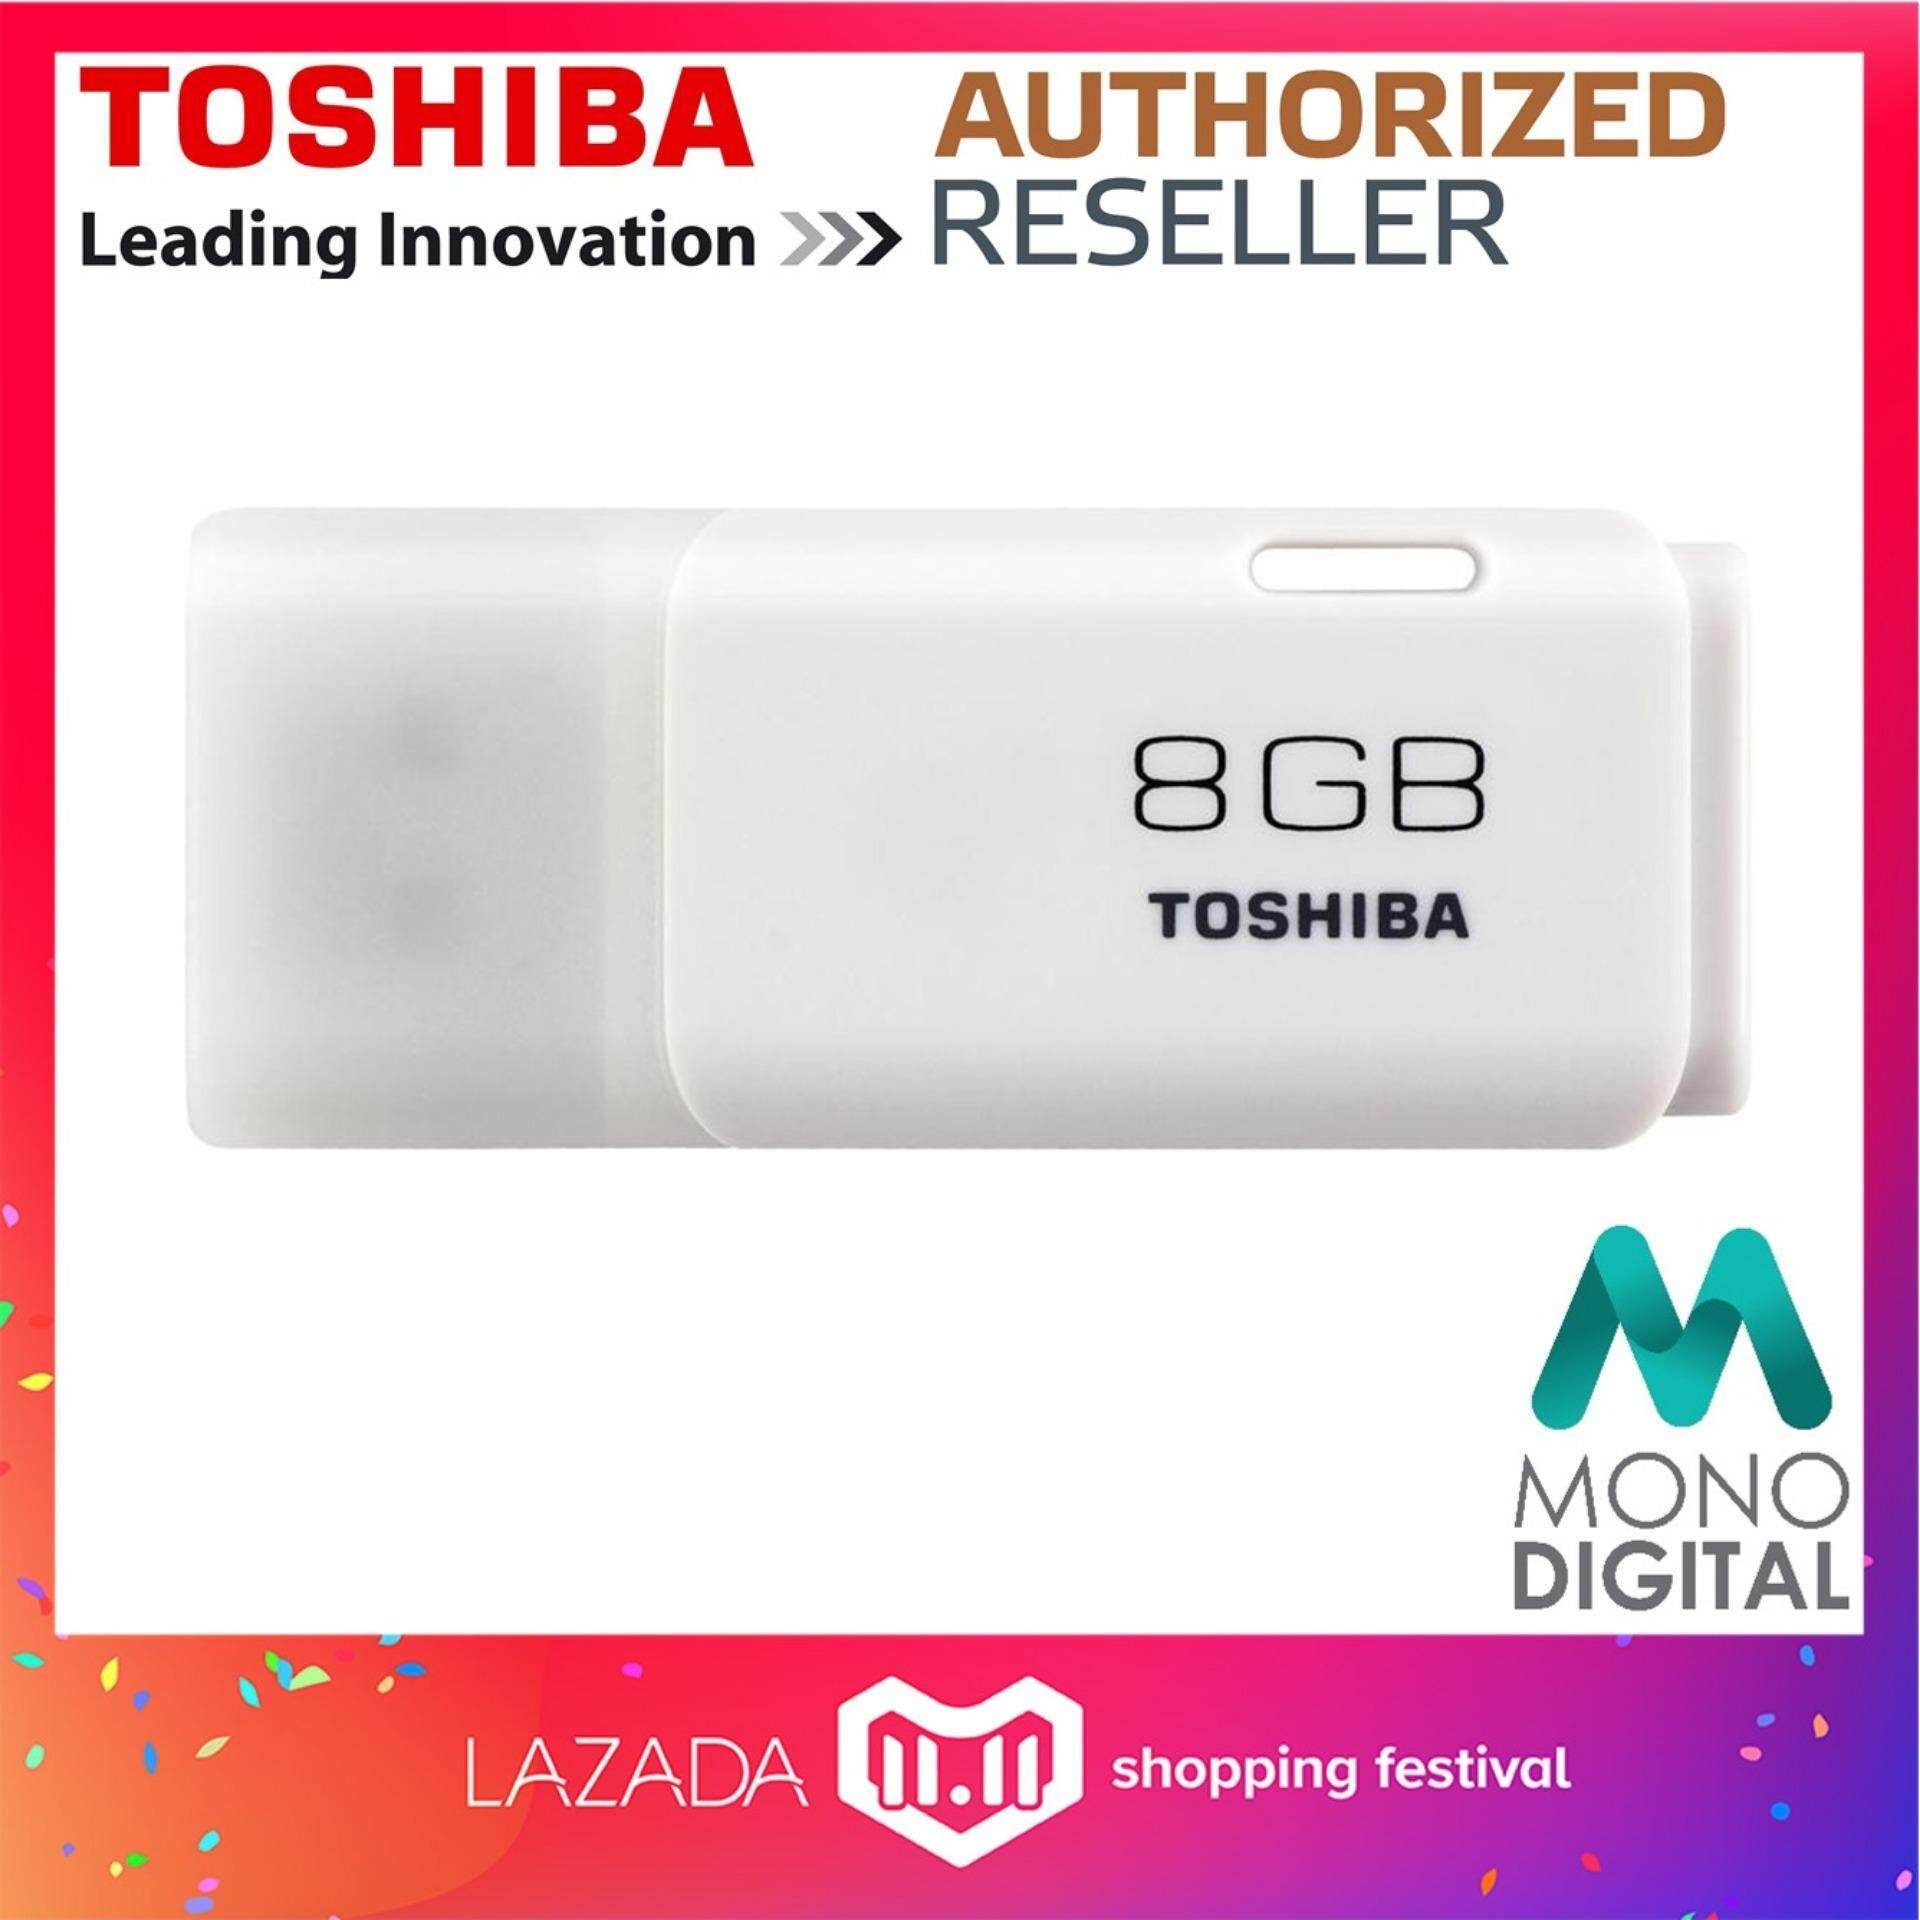 Usb Flash Drives For The Best Price In Malaysia Ter Flashdisk Flasdisk Toshiba 16 Gb 8gb 20 Transmemory Hayabusa Drive Pendrive White